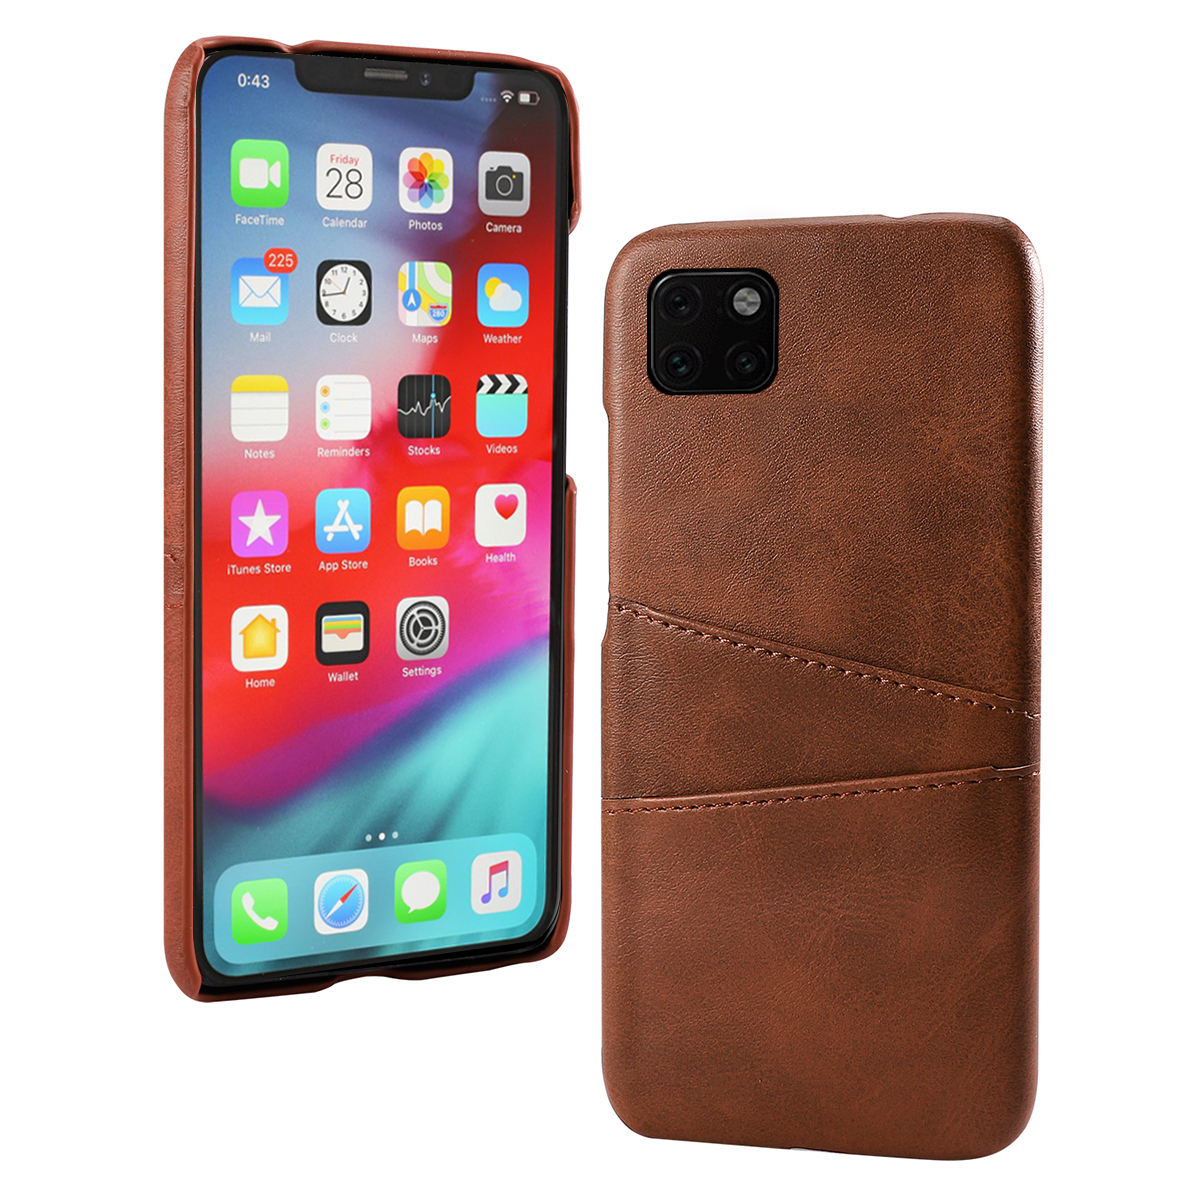 Torubia Leather Card Holder Case for iPhone 11/11 Pro/11 Pro Max 9